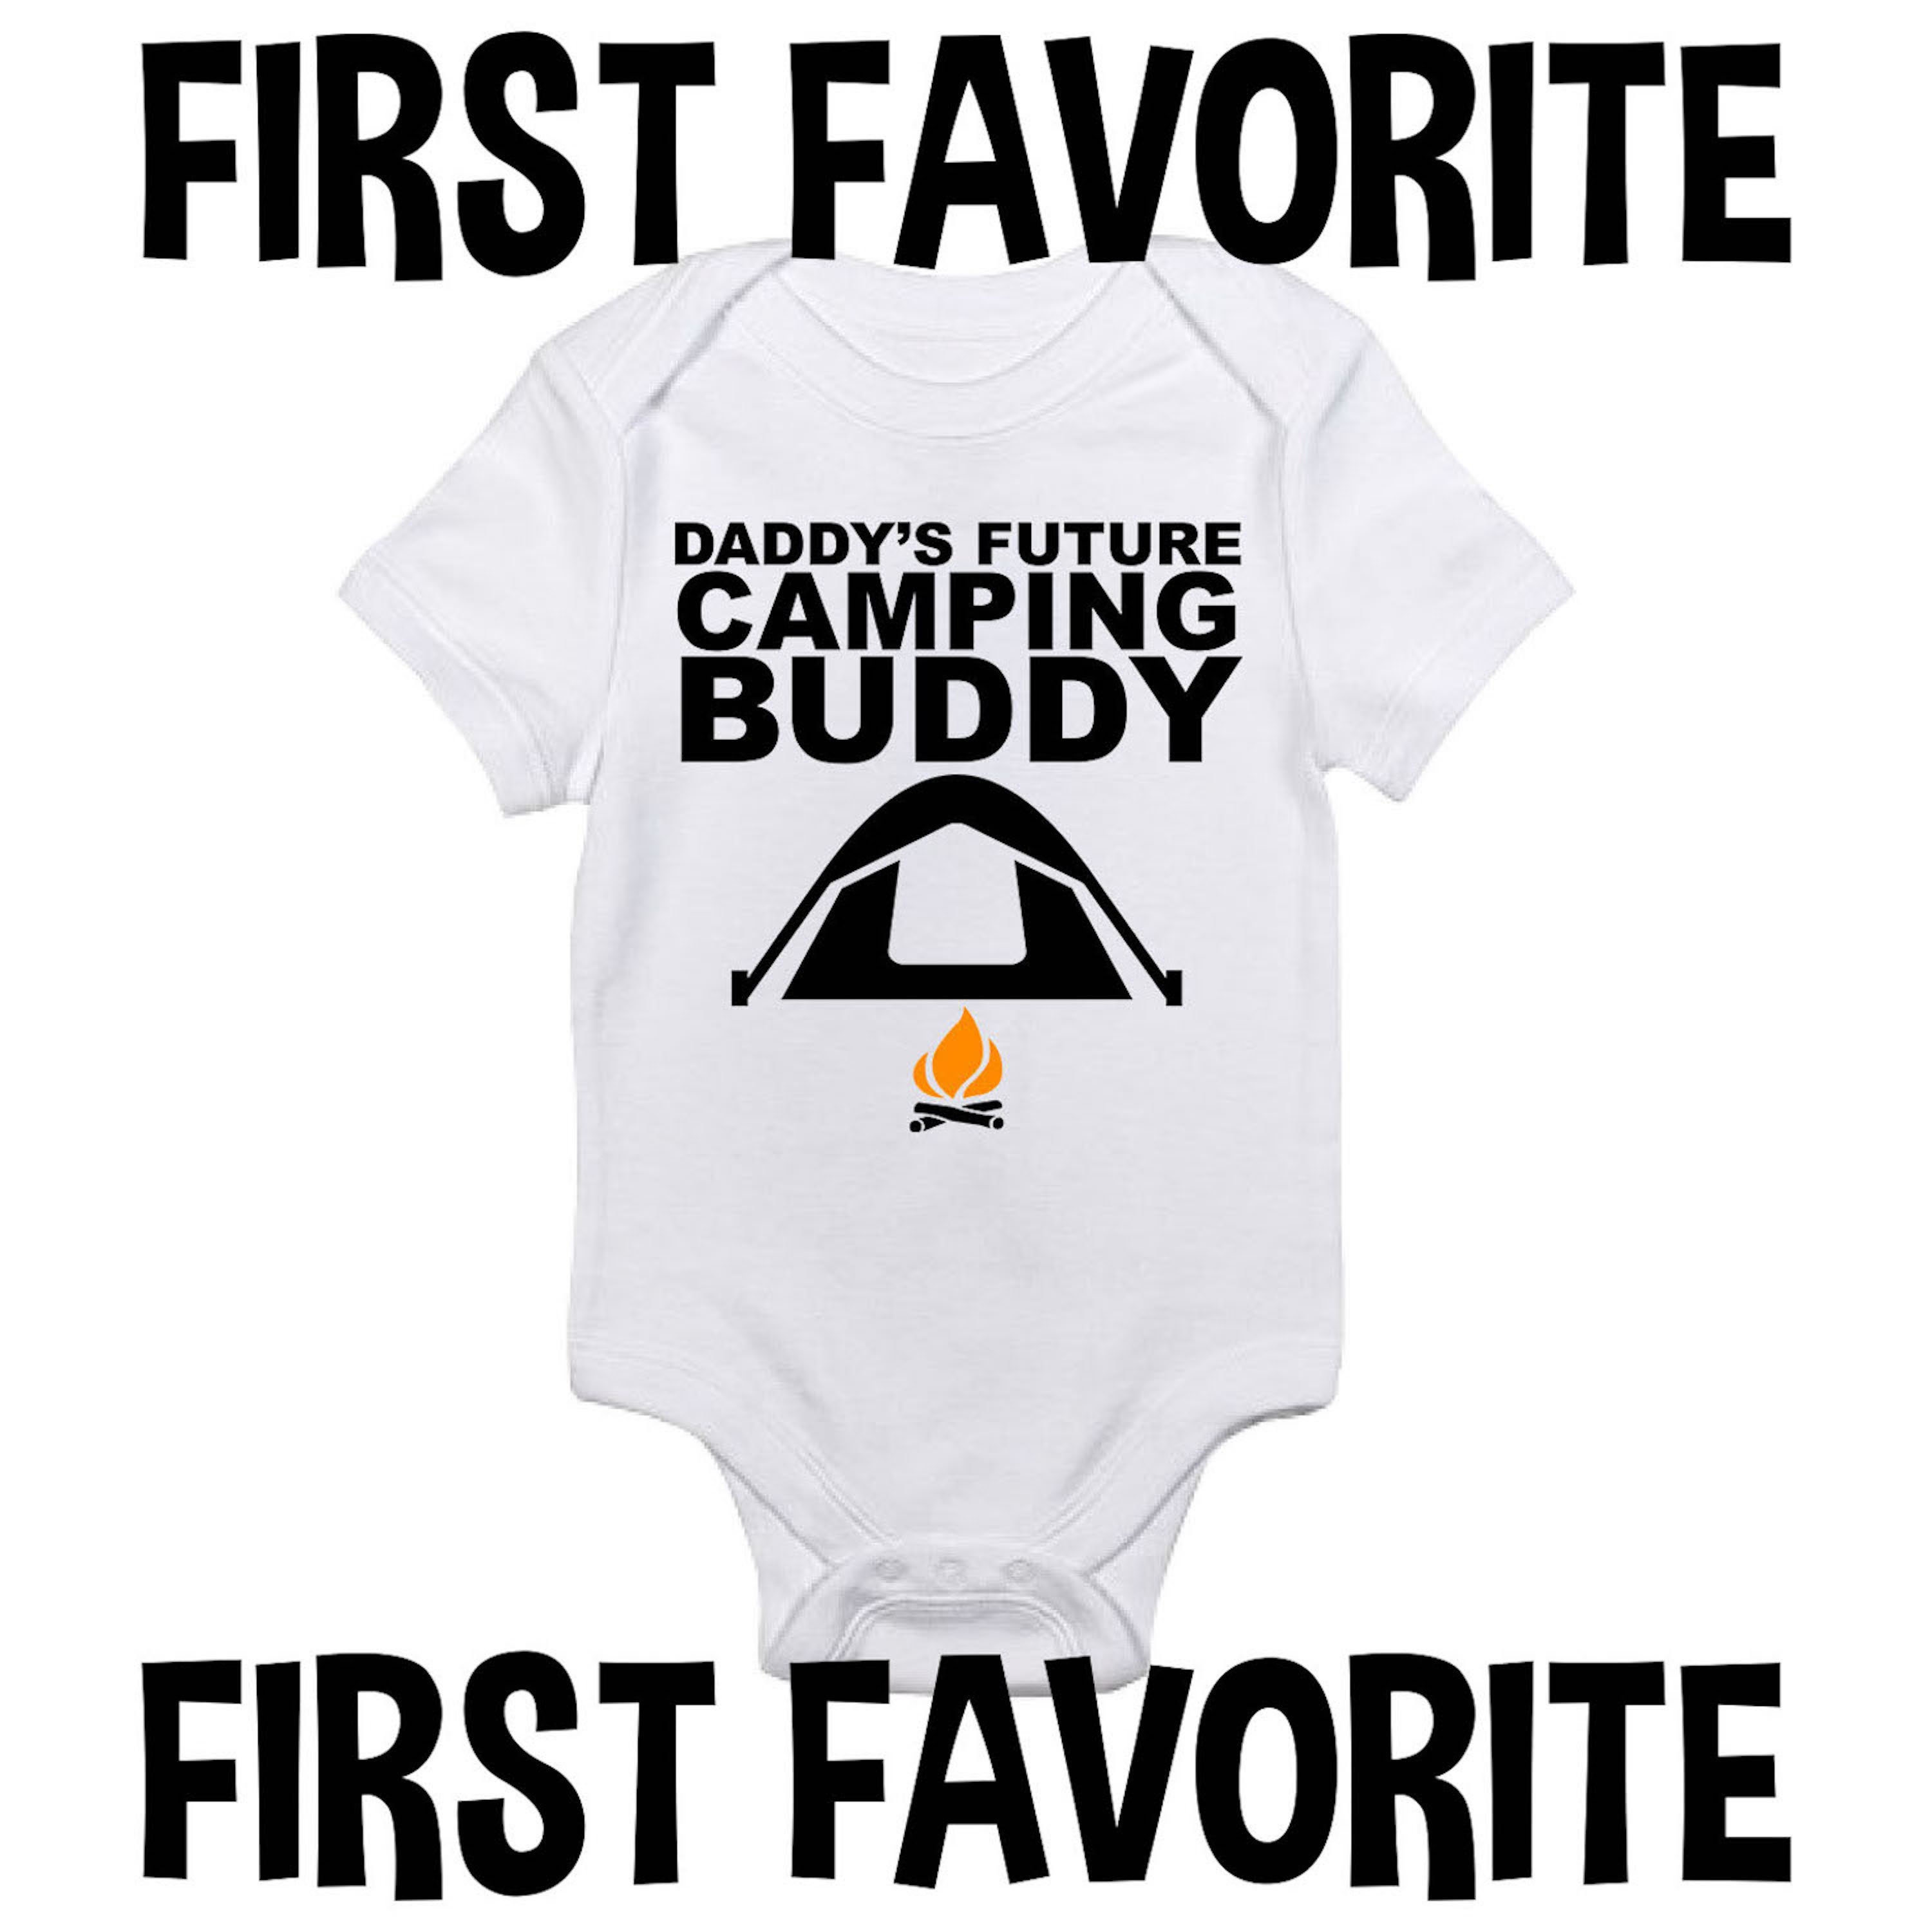 Bicycle Daddy Baby Onesie Shirt Dad Father Shower Gift Newborn Clothes Gerber